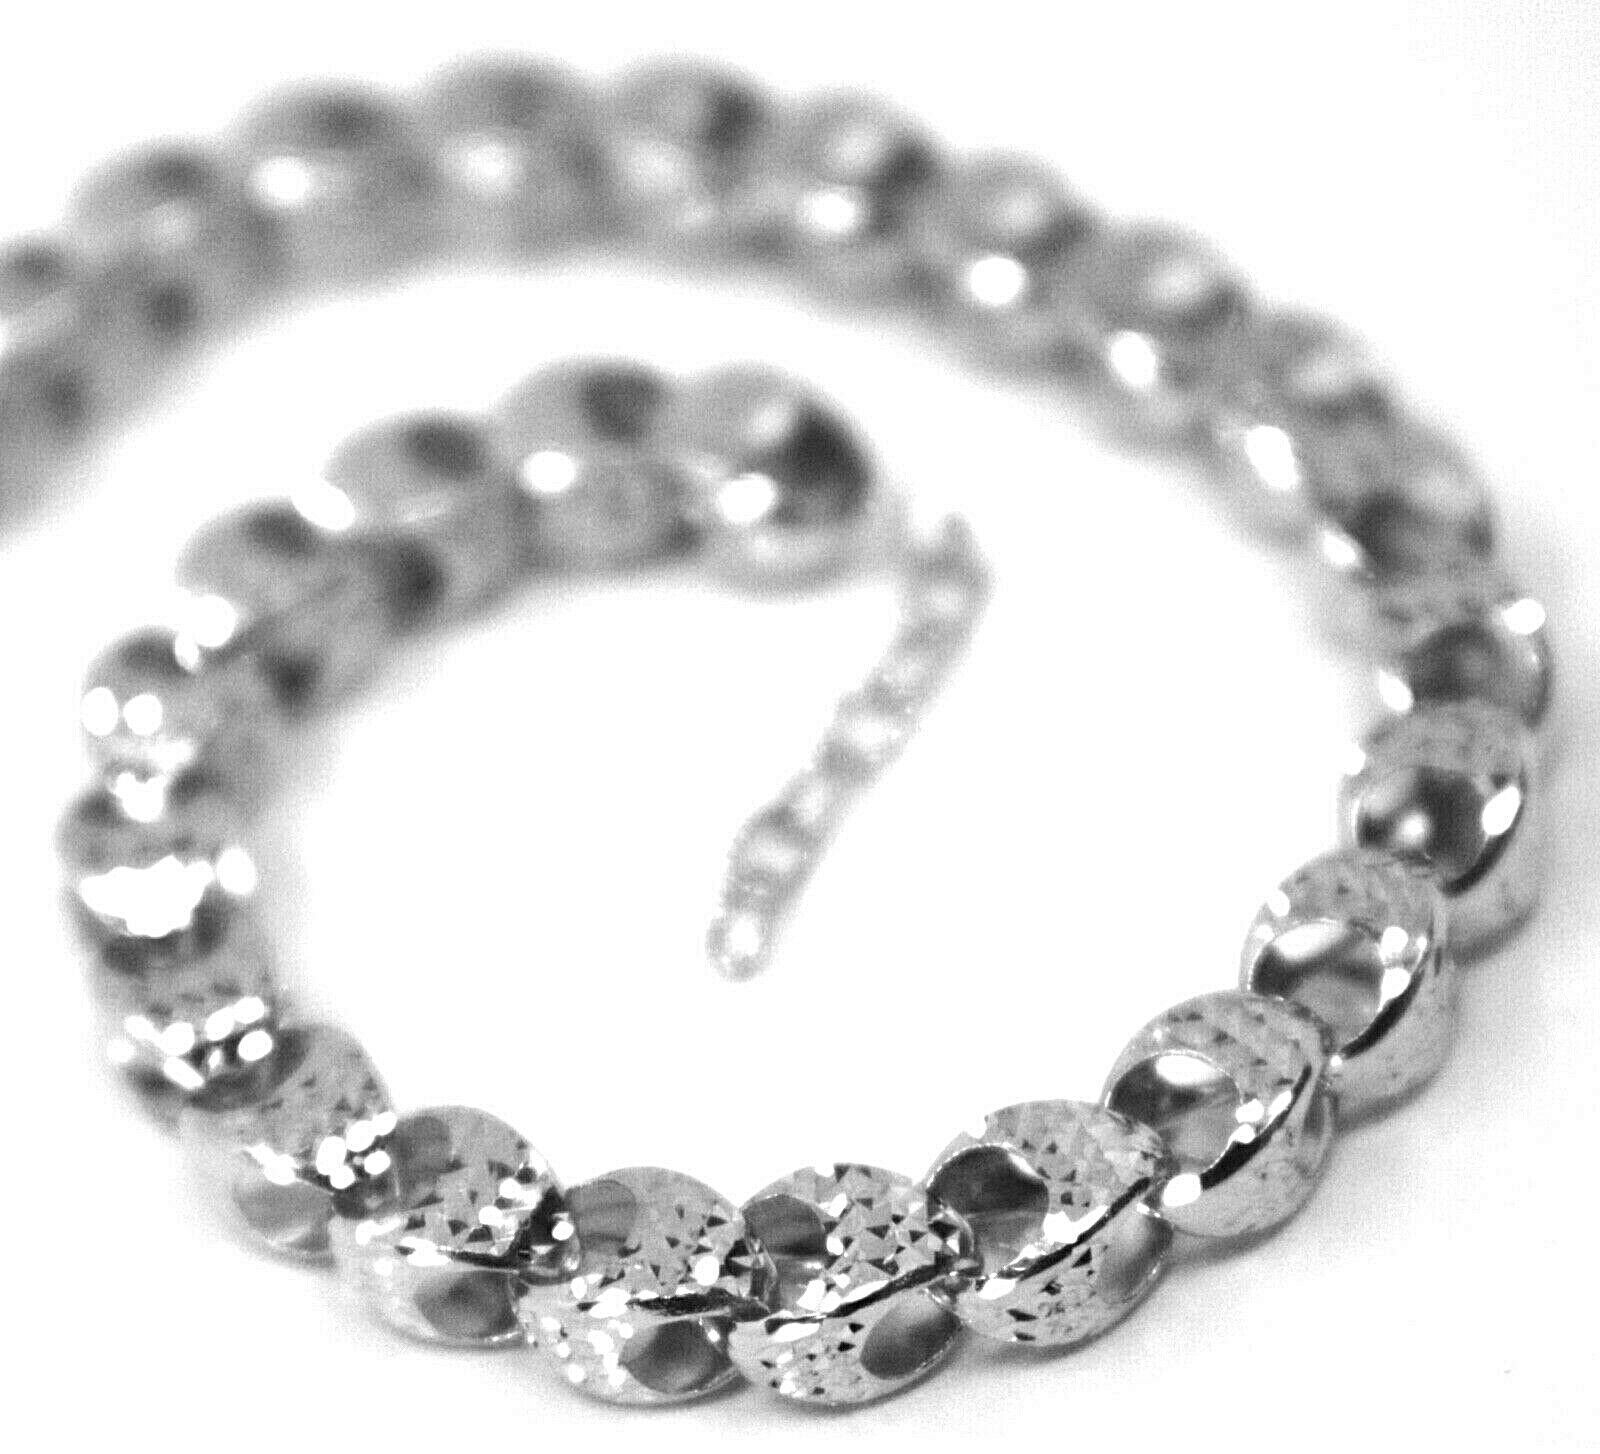 18K WHITE GOLD CHAIN, BIG ROUNDED DIAMOND CUT OVAL DROPS 6 MM, ROUNDED, 18""